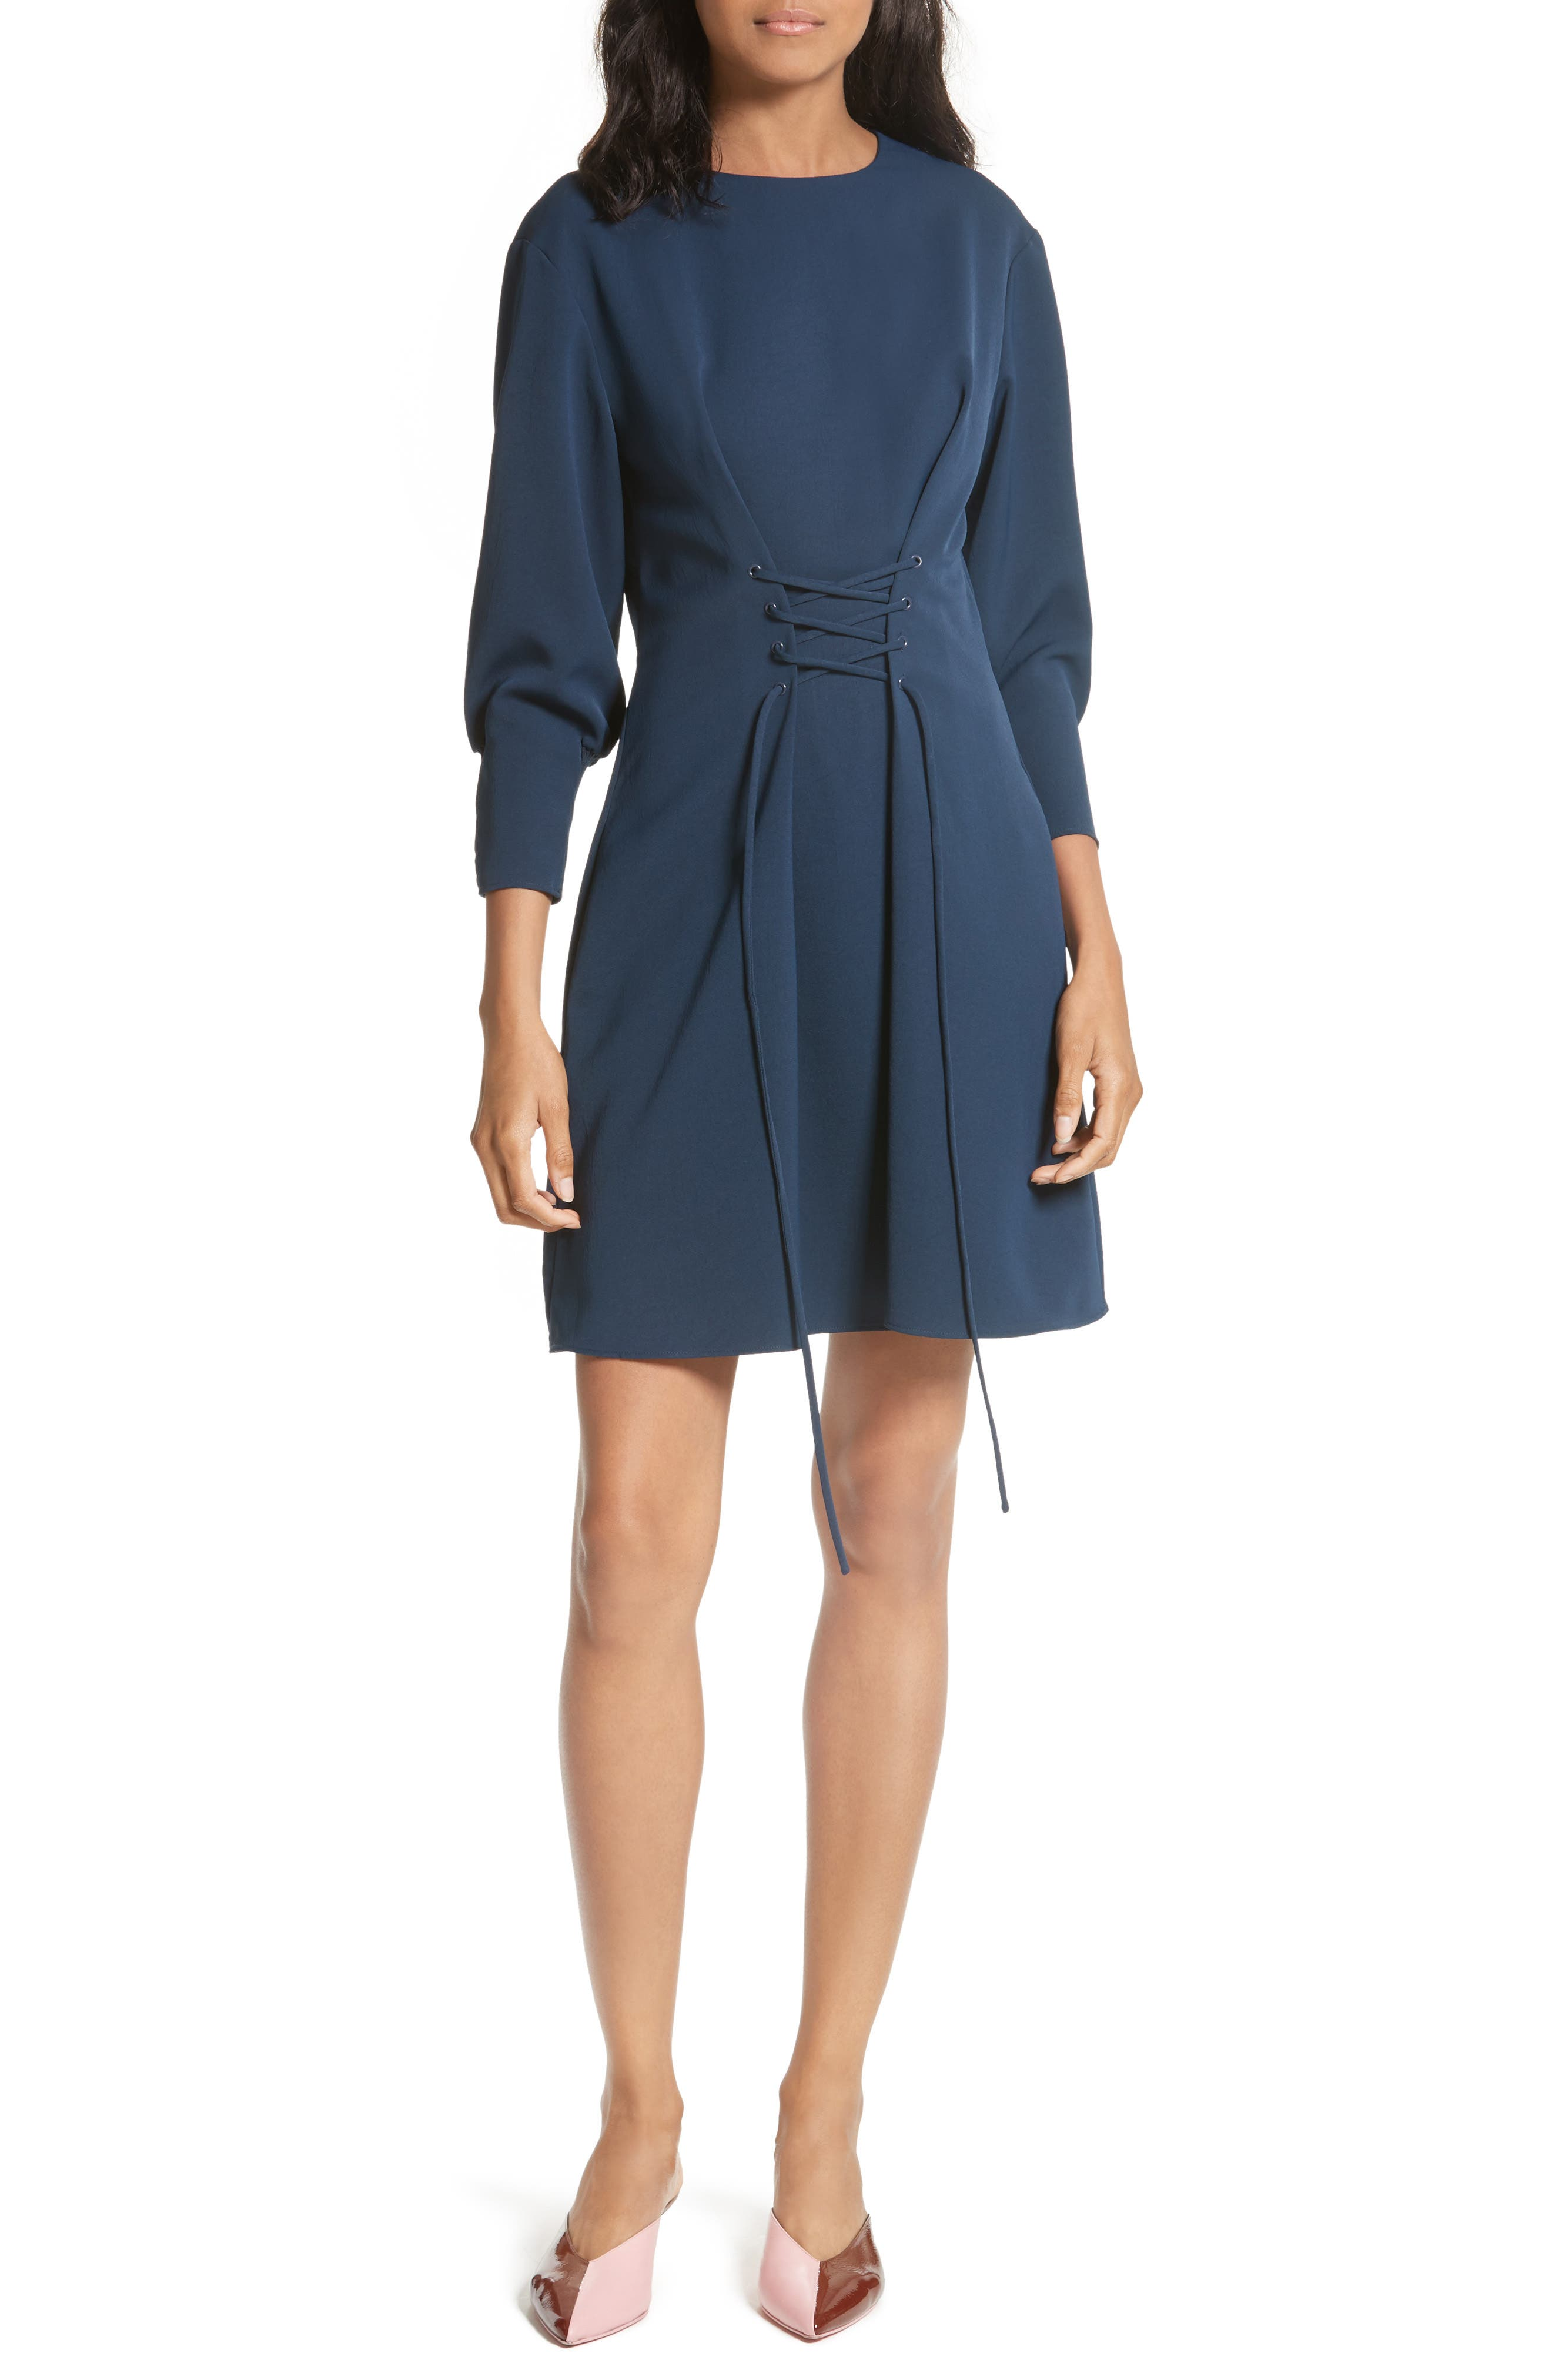 Tibi Lace-Up Draped Twill Dress